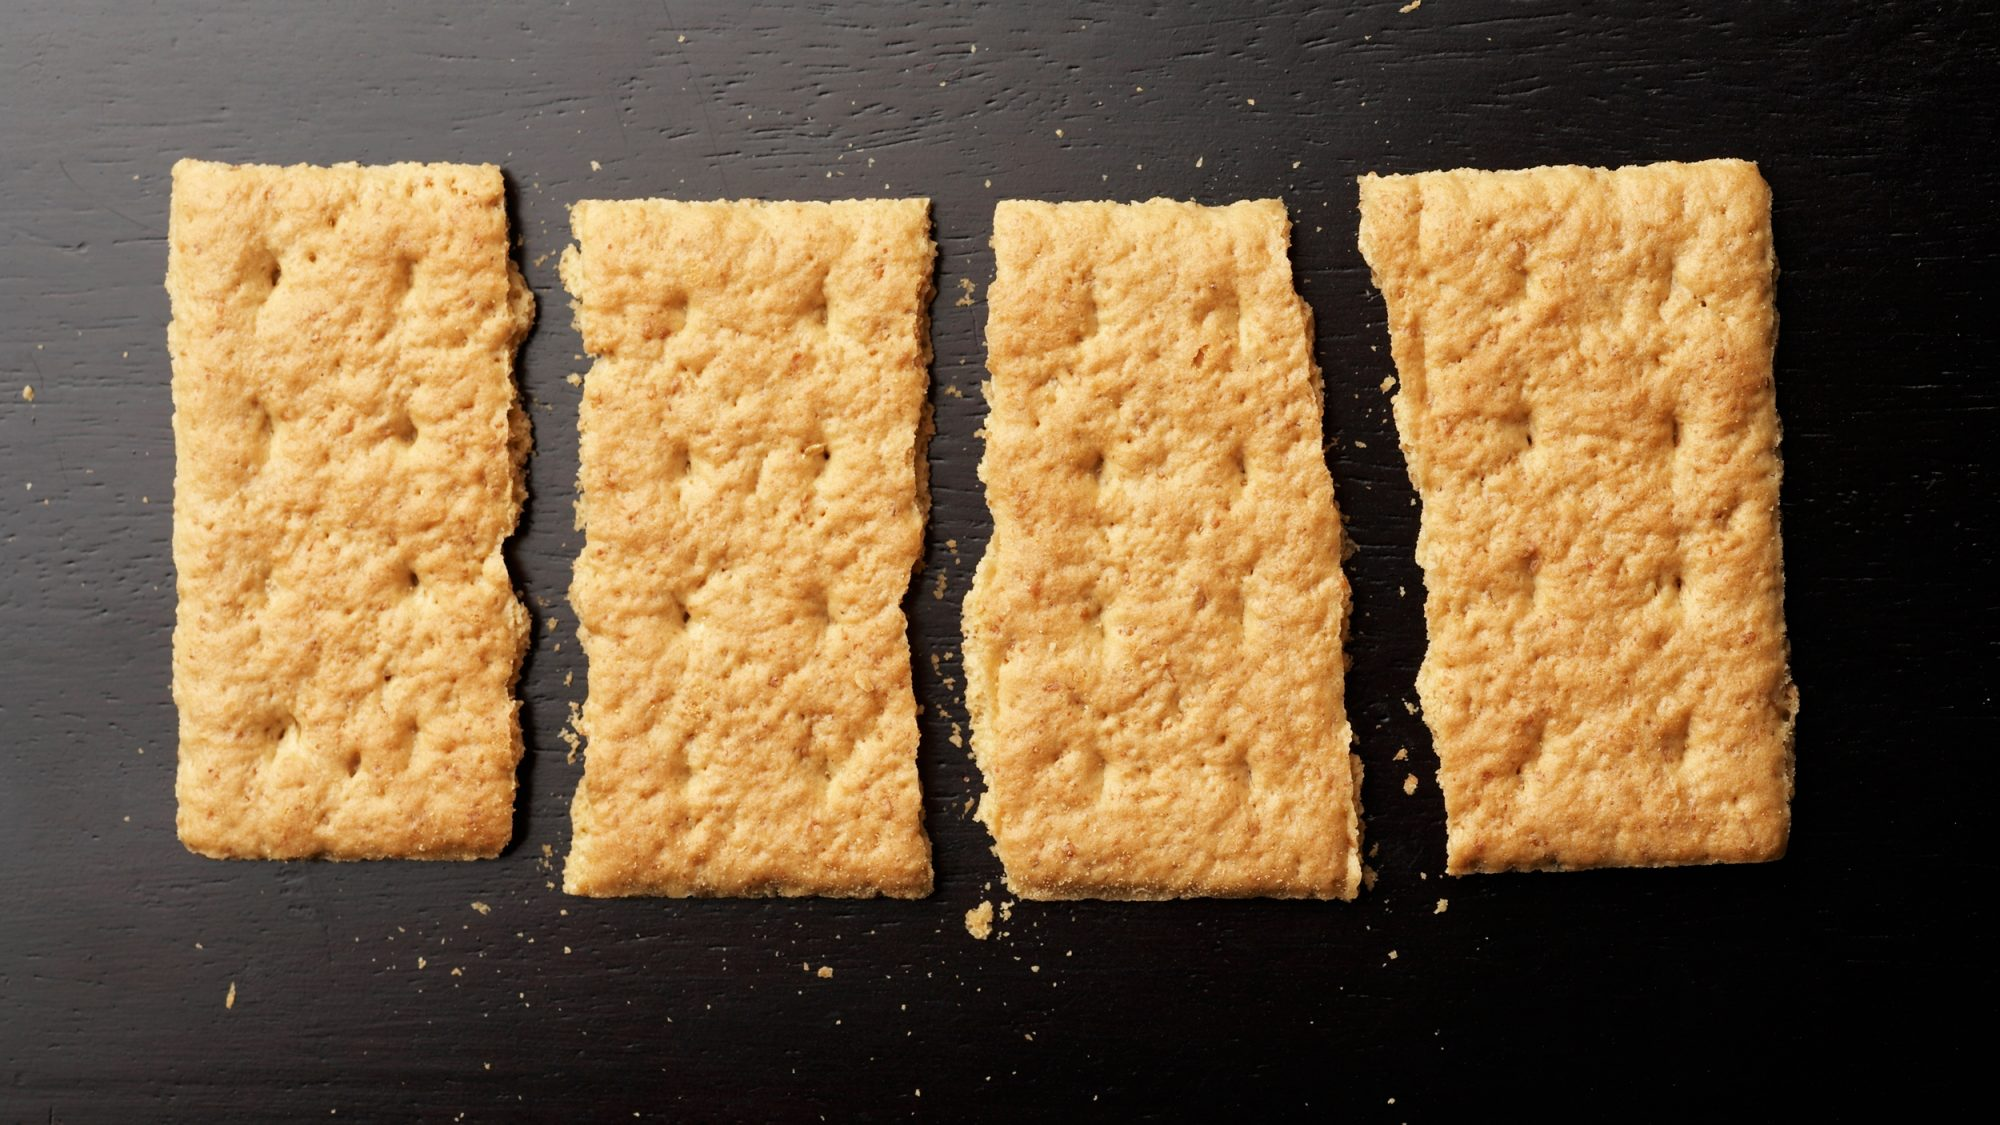 Graham Crackers for Curbing Sexual Appetite